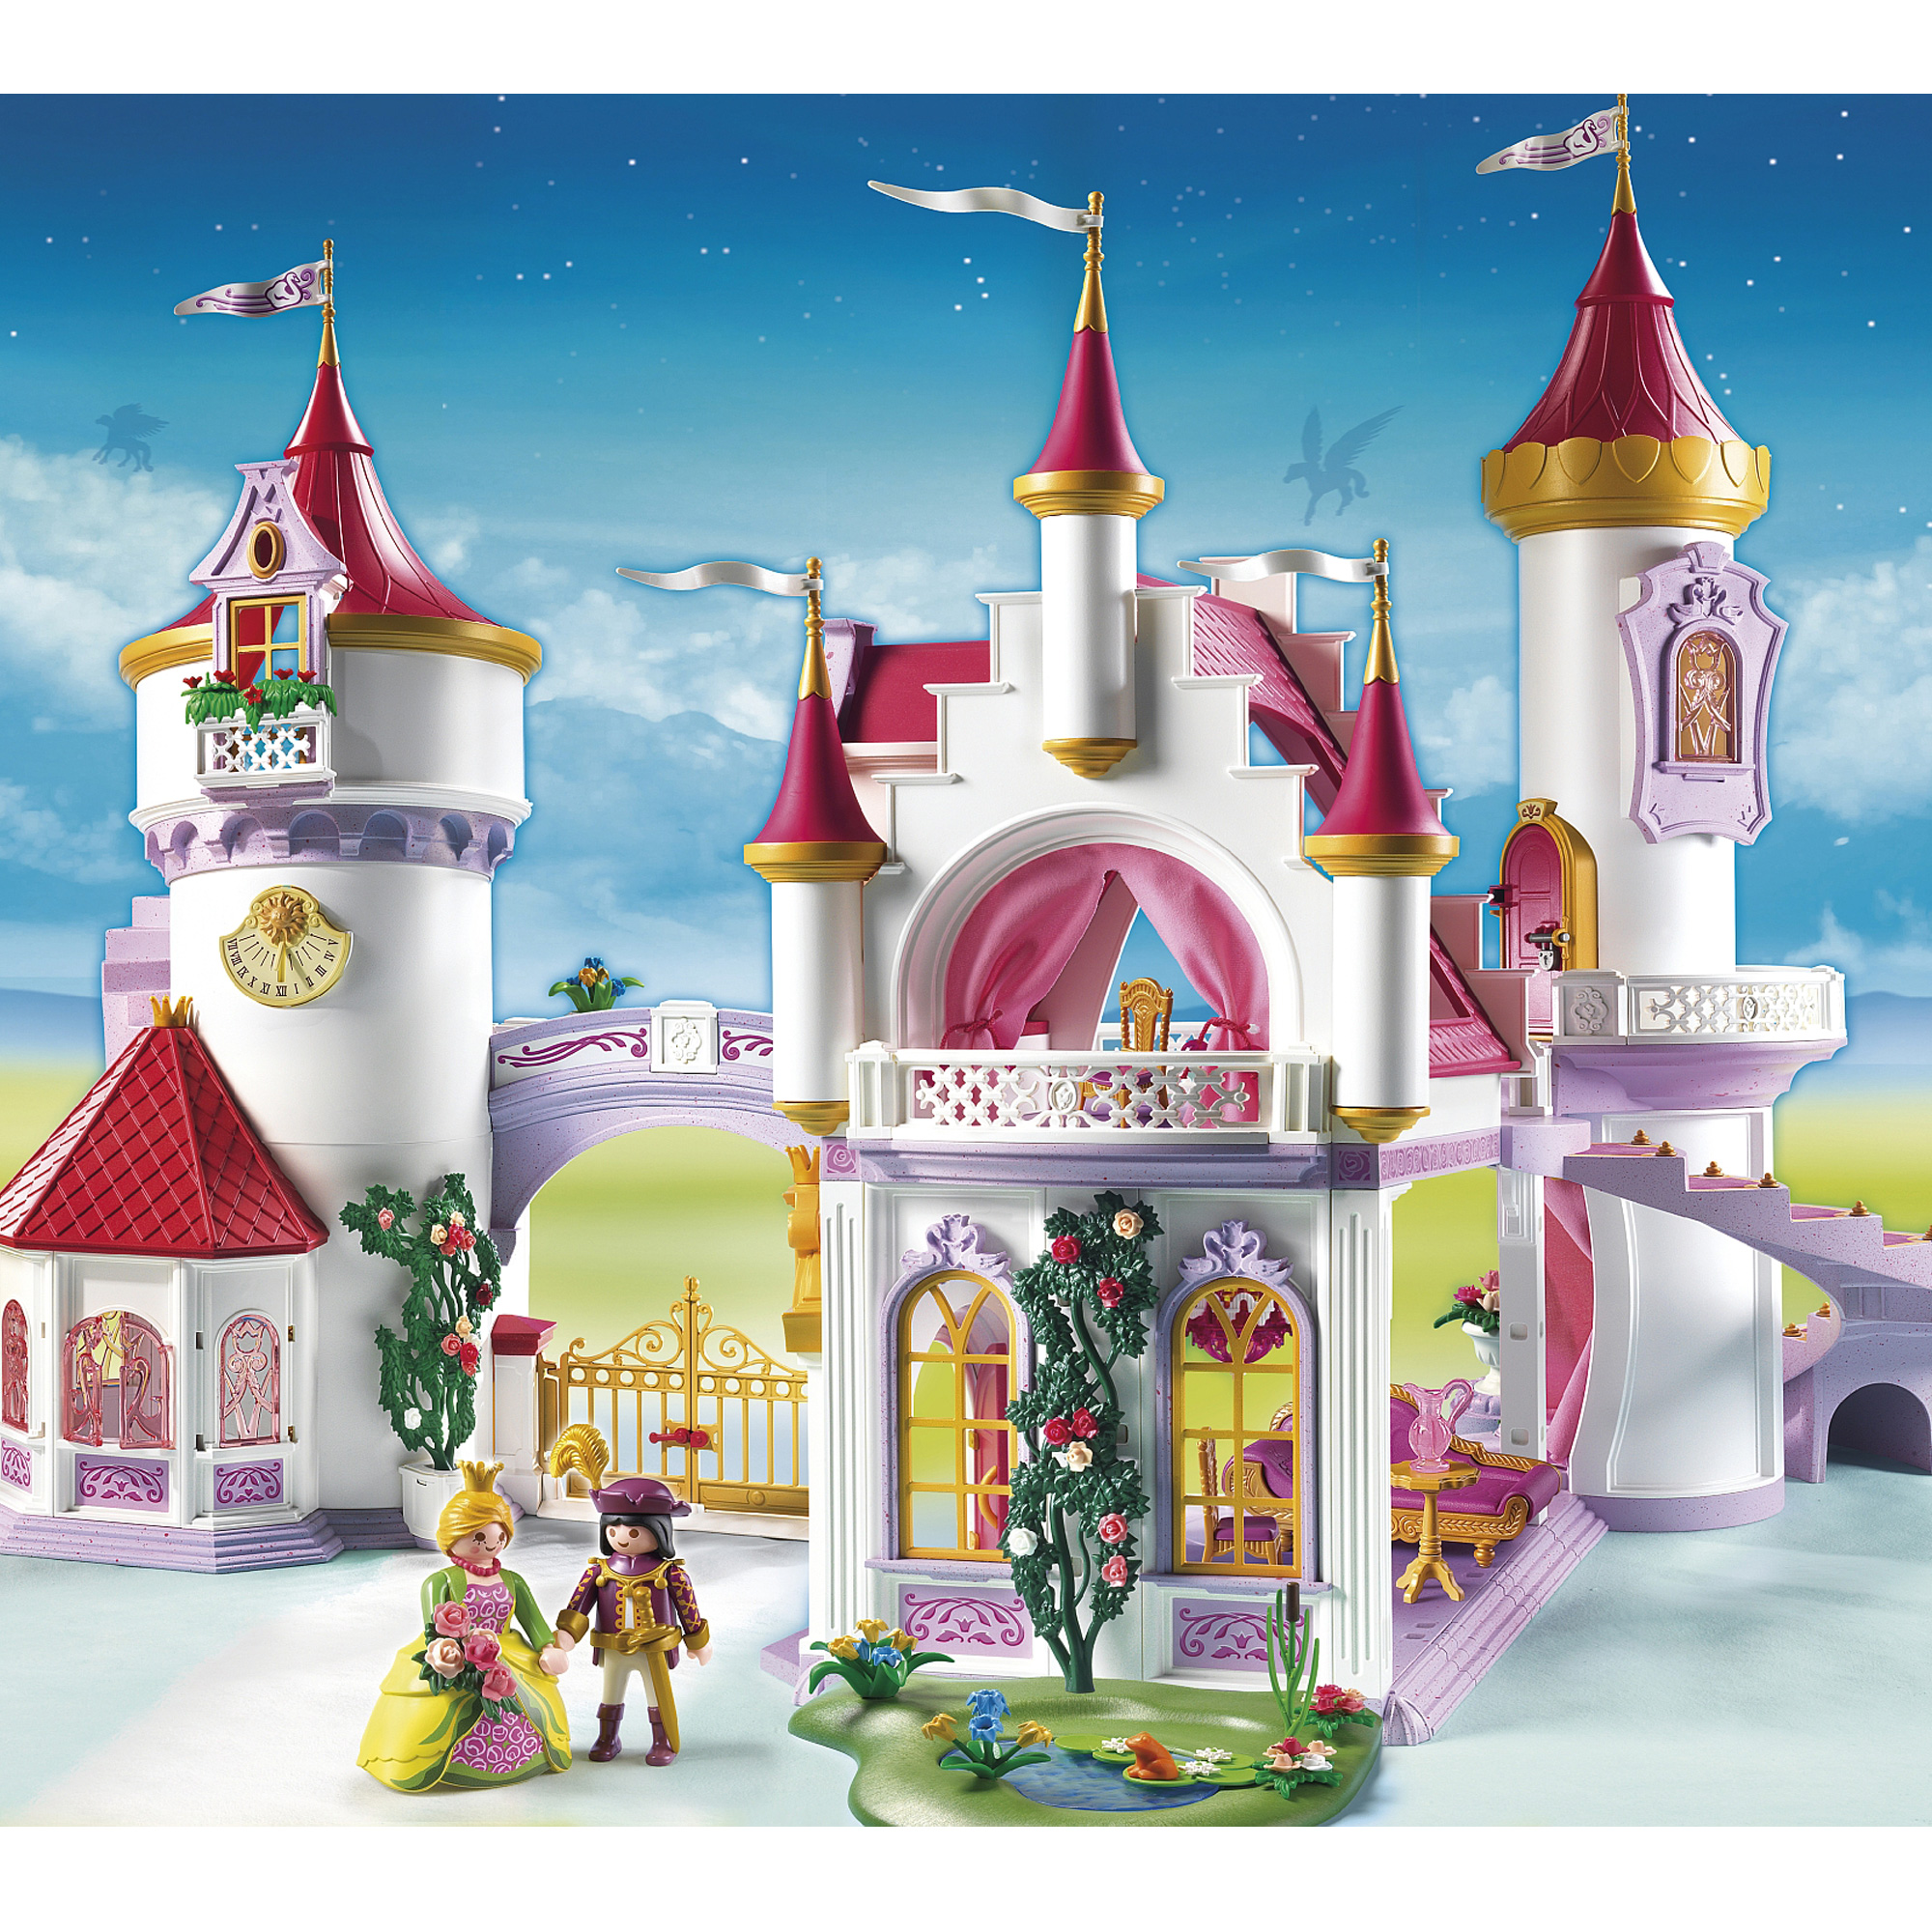 Playmobil princess fantasy castle 5142 from the playmobil for Playmobil princesse 5142